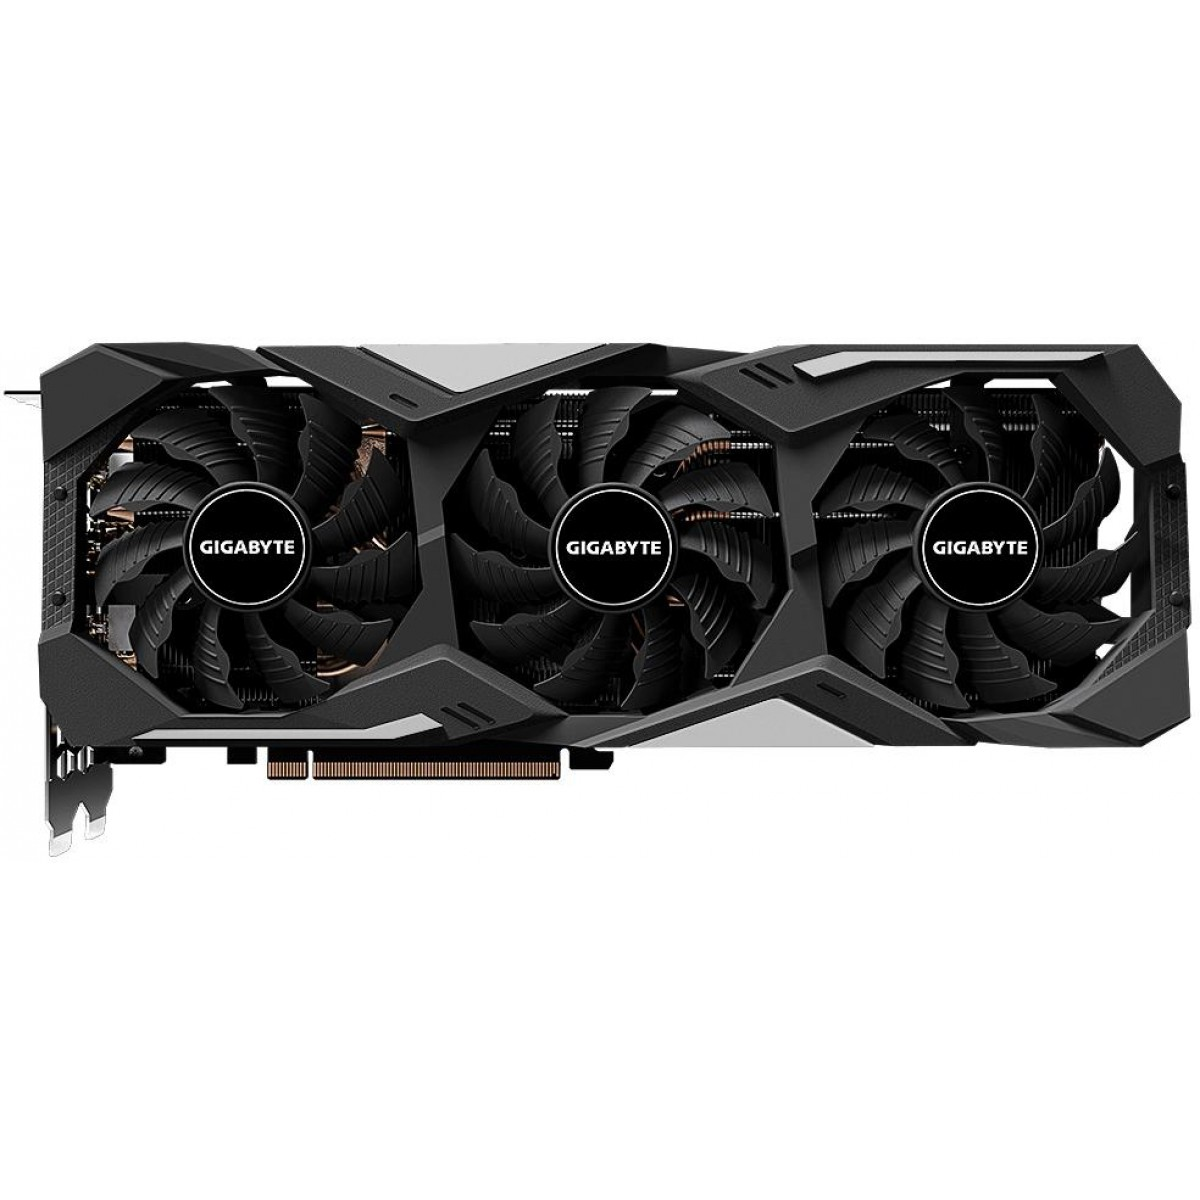 Placa de Vídeo Gigabyte GeForce RTX 2080 Super Windforce OC, 8GB GDDR6, 256Bit, GV-N208SWF3OC-8GD